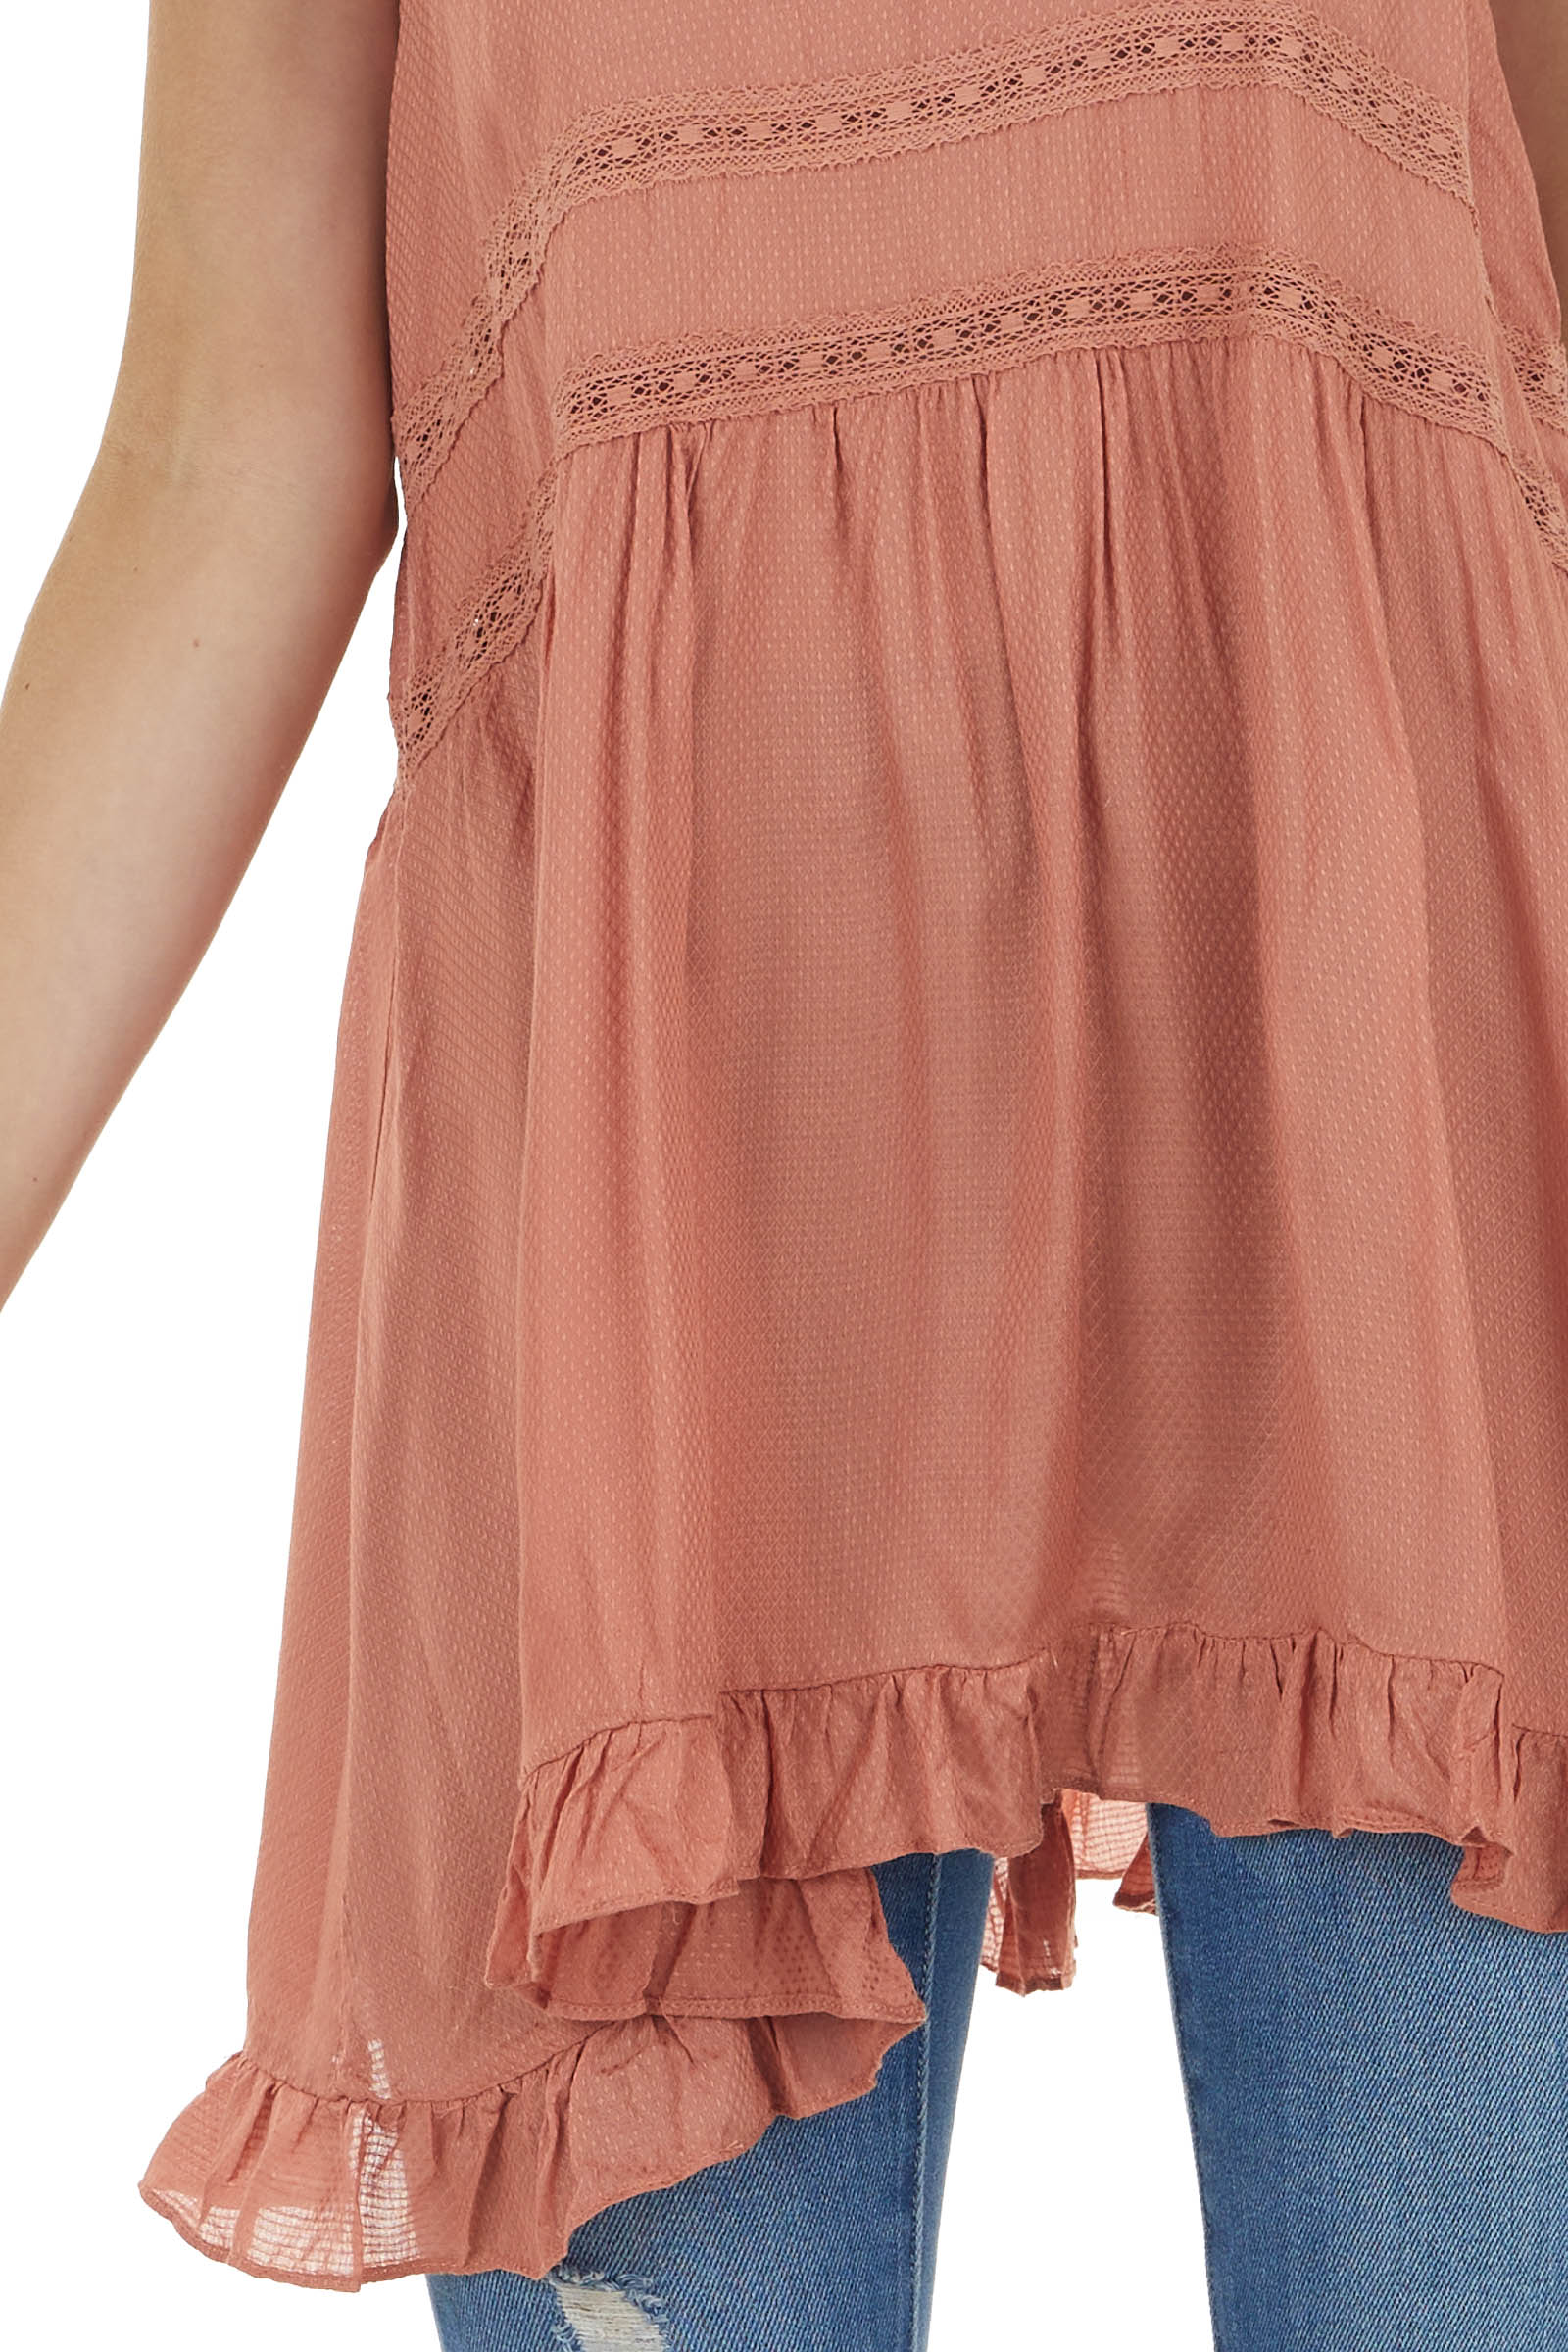 Terracotta Textured Sleeveless Tunic Top with Lace Details